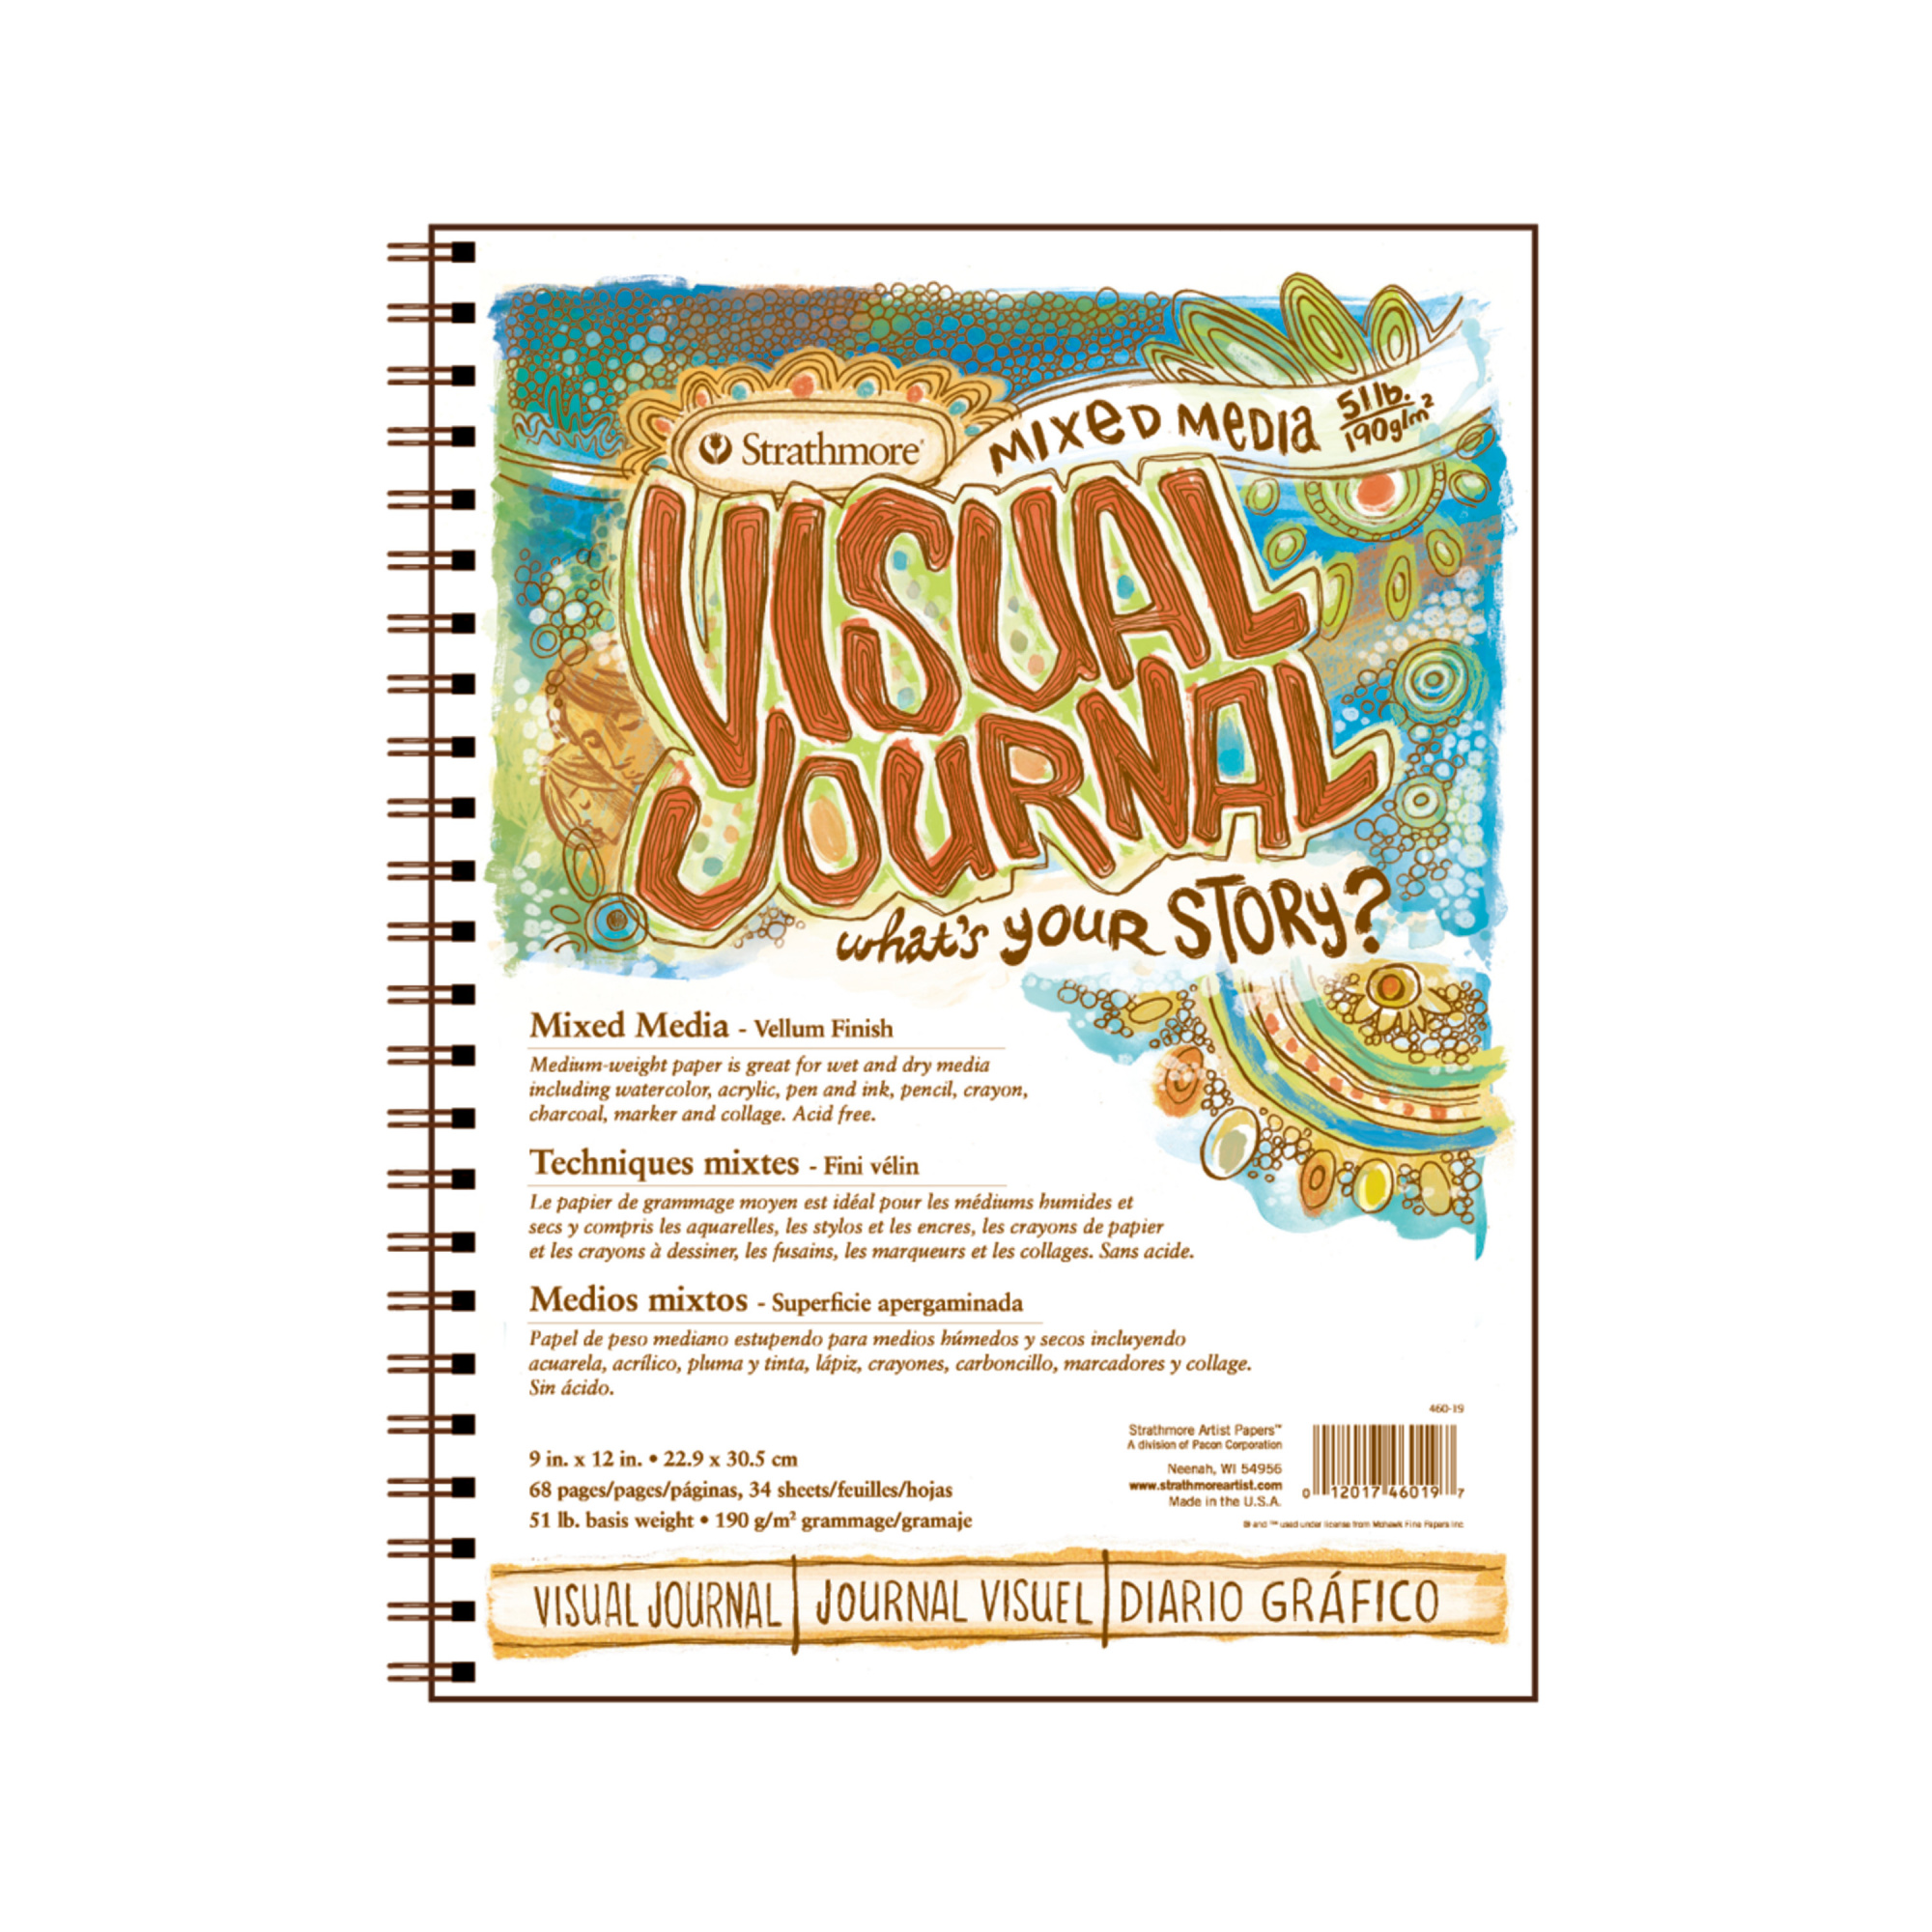 Strathmore 500 Series Visual Mixed Media Journal 34 Sheets 5.5x8 Vellum Wire Bound